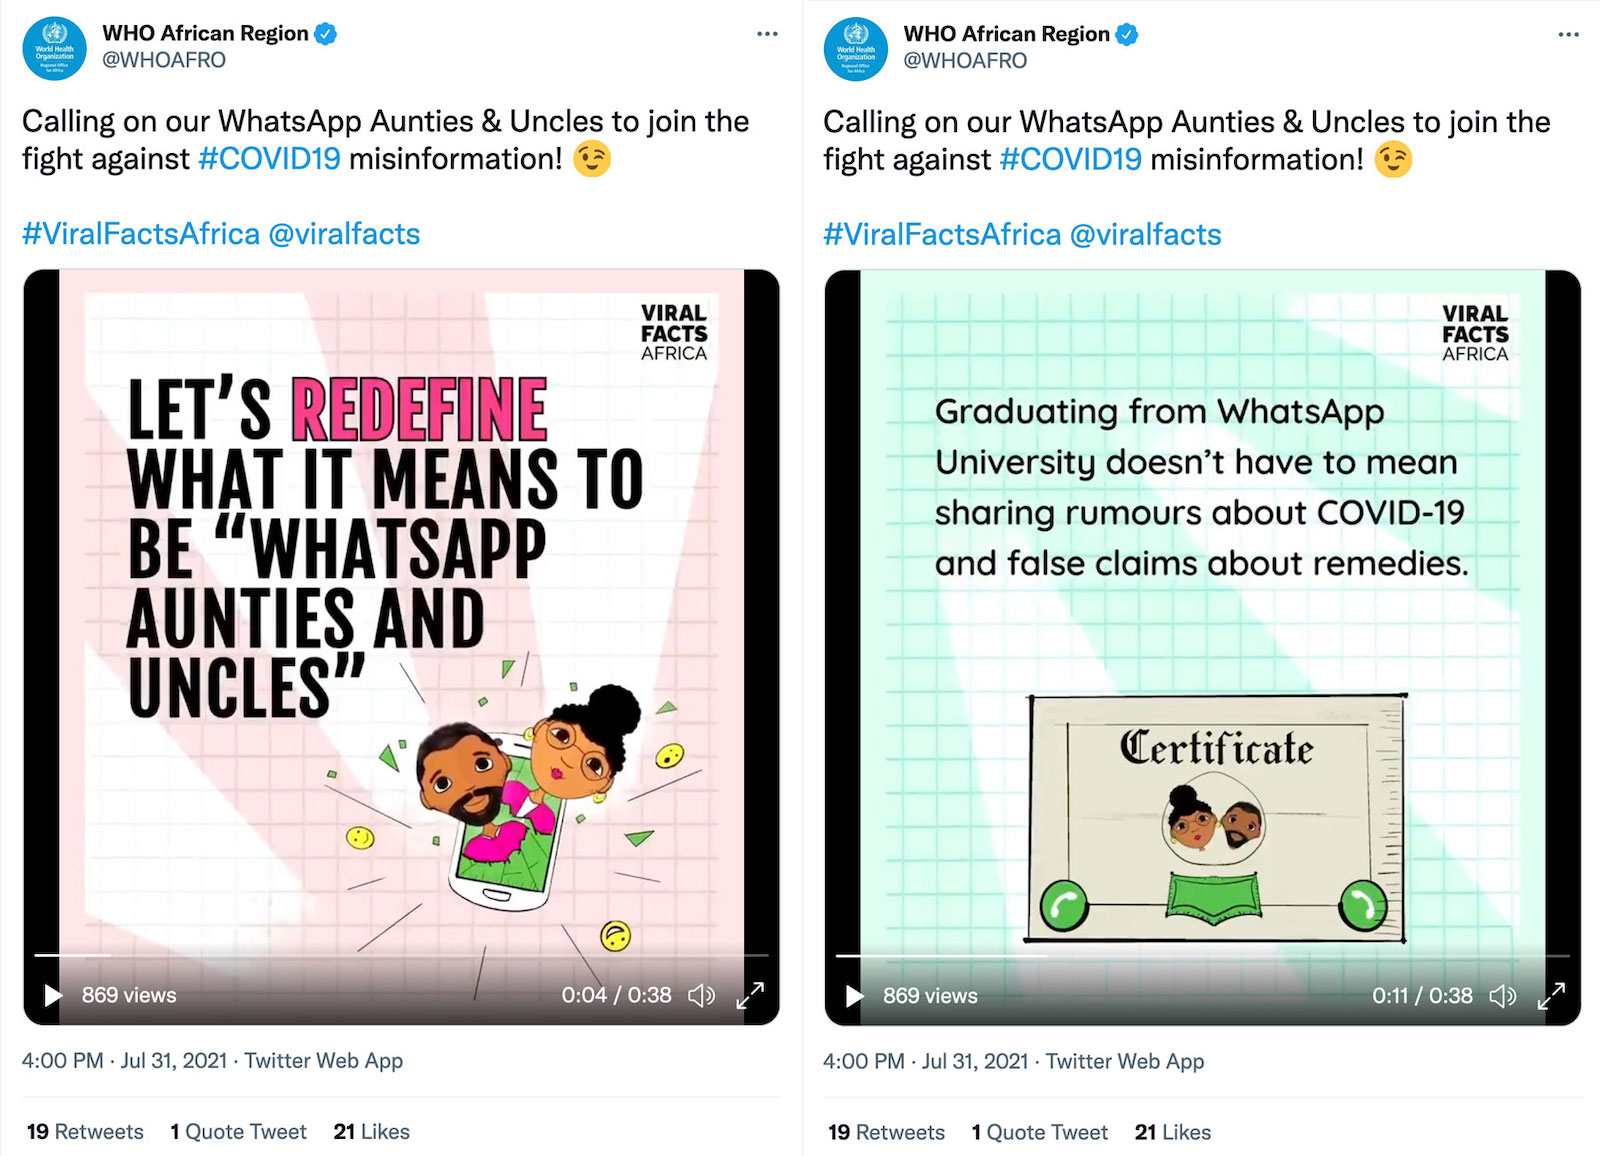 """The image shows the same tweet by WHO Africa Region side-by-side with the video paused at different times. The tweet text reads """"Calling on our WhatsApp Aunties & Uncles to join the fight against #COVID19 misinformation! #ViralFactsAfrica @viralfacts""""  The video still on the left shows illustrations of two BIPOC people bursting out of a mobile phone screen. The bold text reads """"Let's redefine what it means to be """"WhatsApp aunties and uncles"""""""". The video still on the left shows an illustrated """"certificate"""" with the characters from the previous still on it. The text reads """"Graduating from WhatsApp University doesn't have to mean sharing rumours about COVID-19 and false claims about remedies.""""  In both stills the Viral Facts Africa logo is shown in the top right corner."""